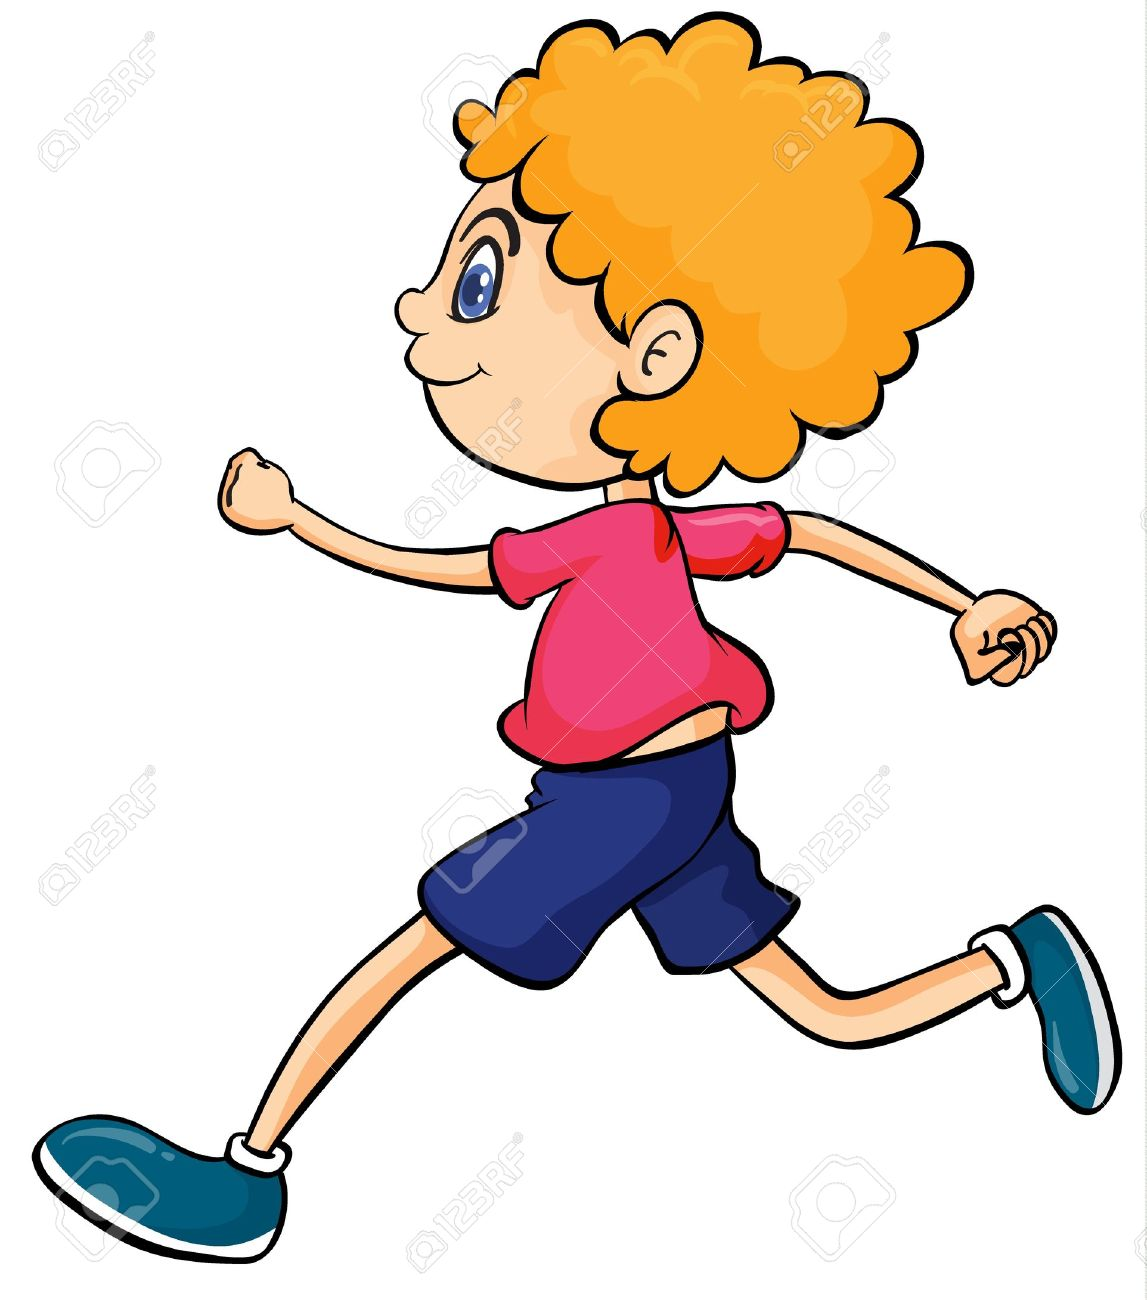 1147x1300 68,531 Running Man Stock Illustrations, Cliparts And Royalty Free